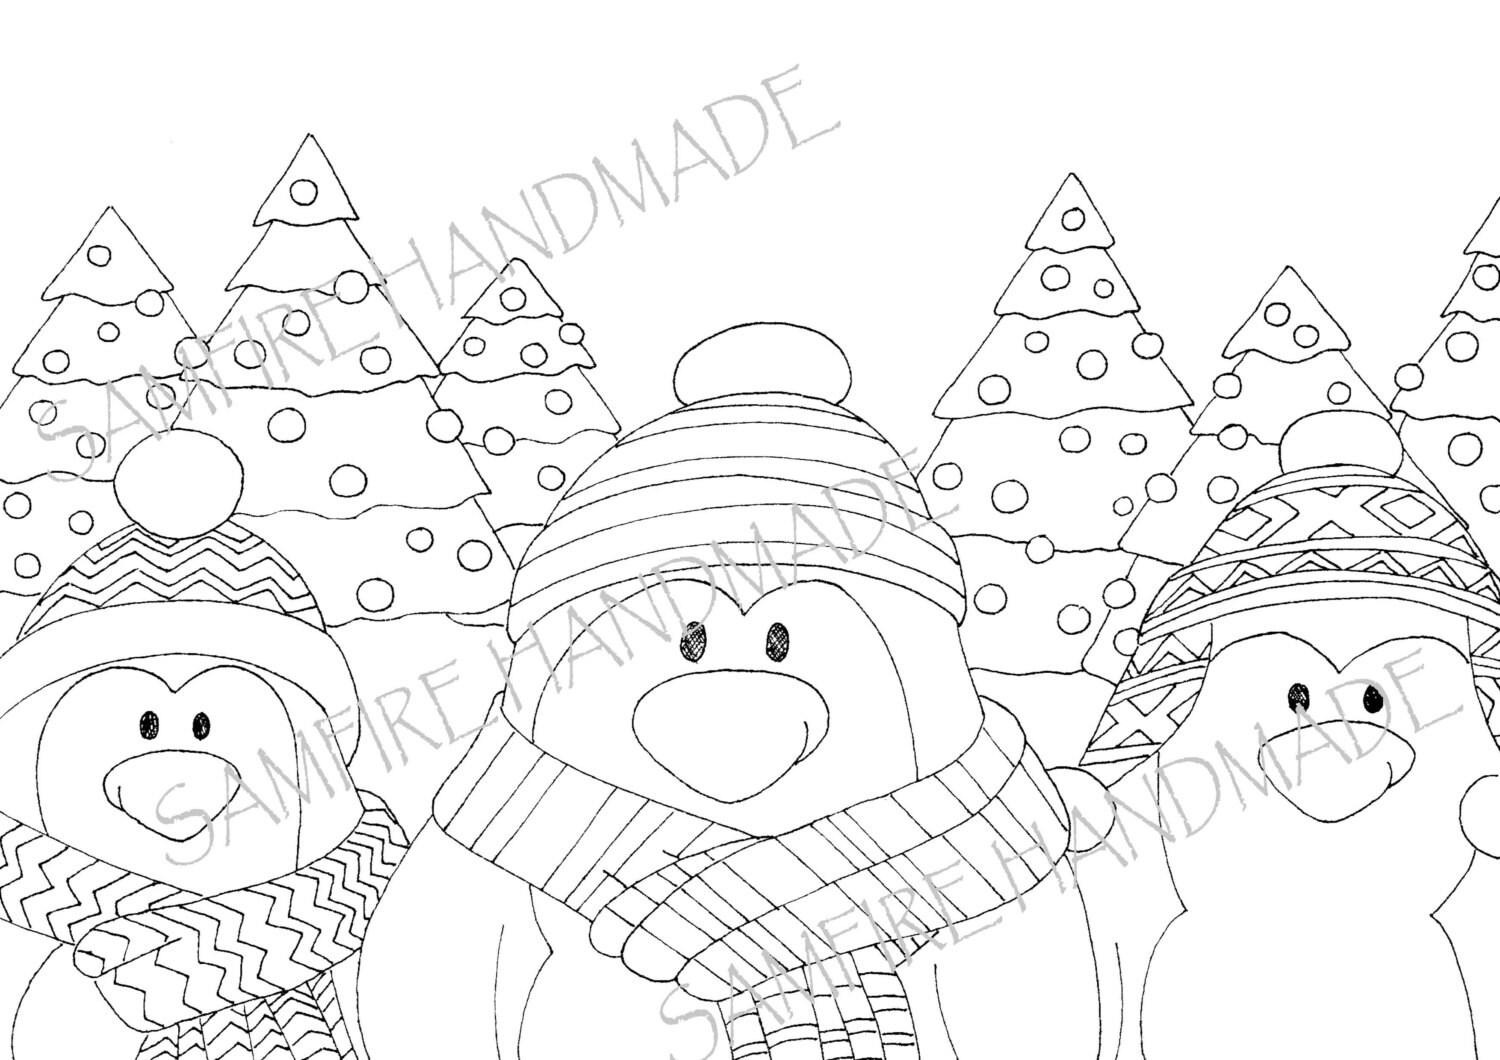 Penguin instant download colouring page-Christmas